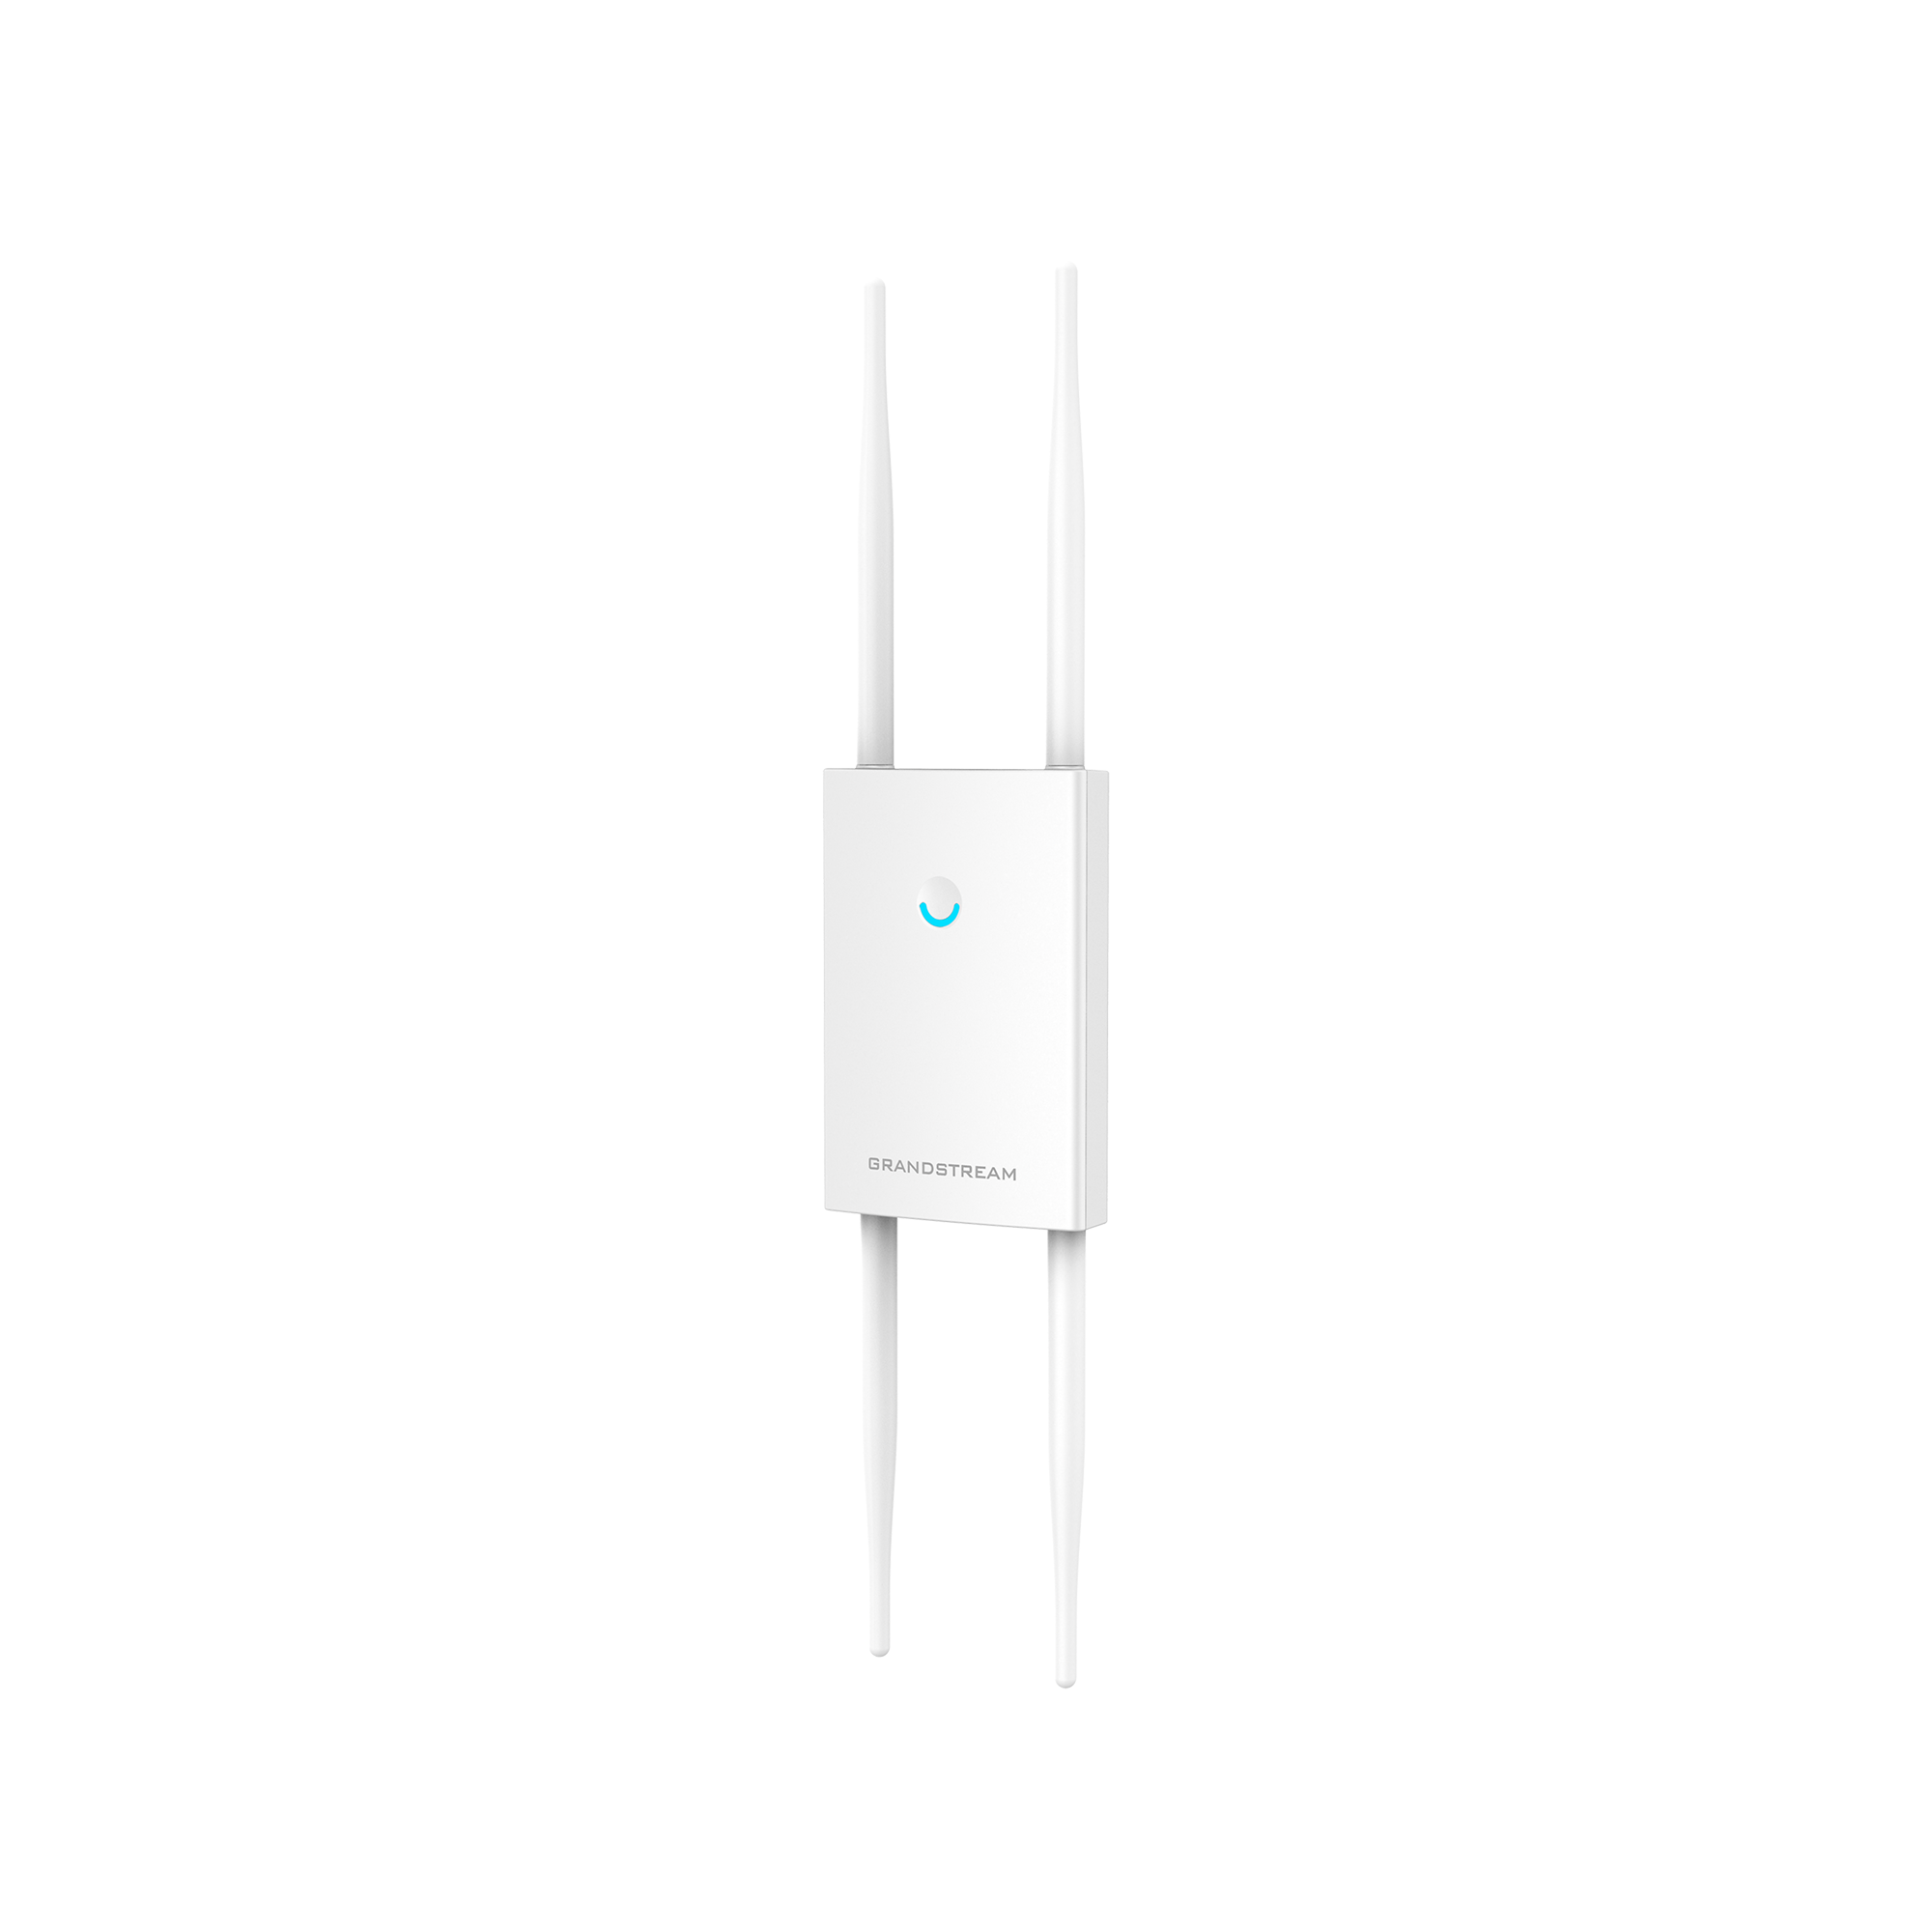 GWN7630LR_antenna_right_1